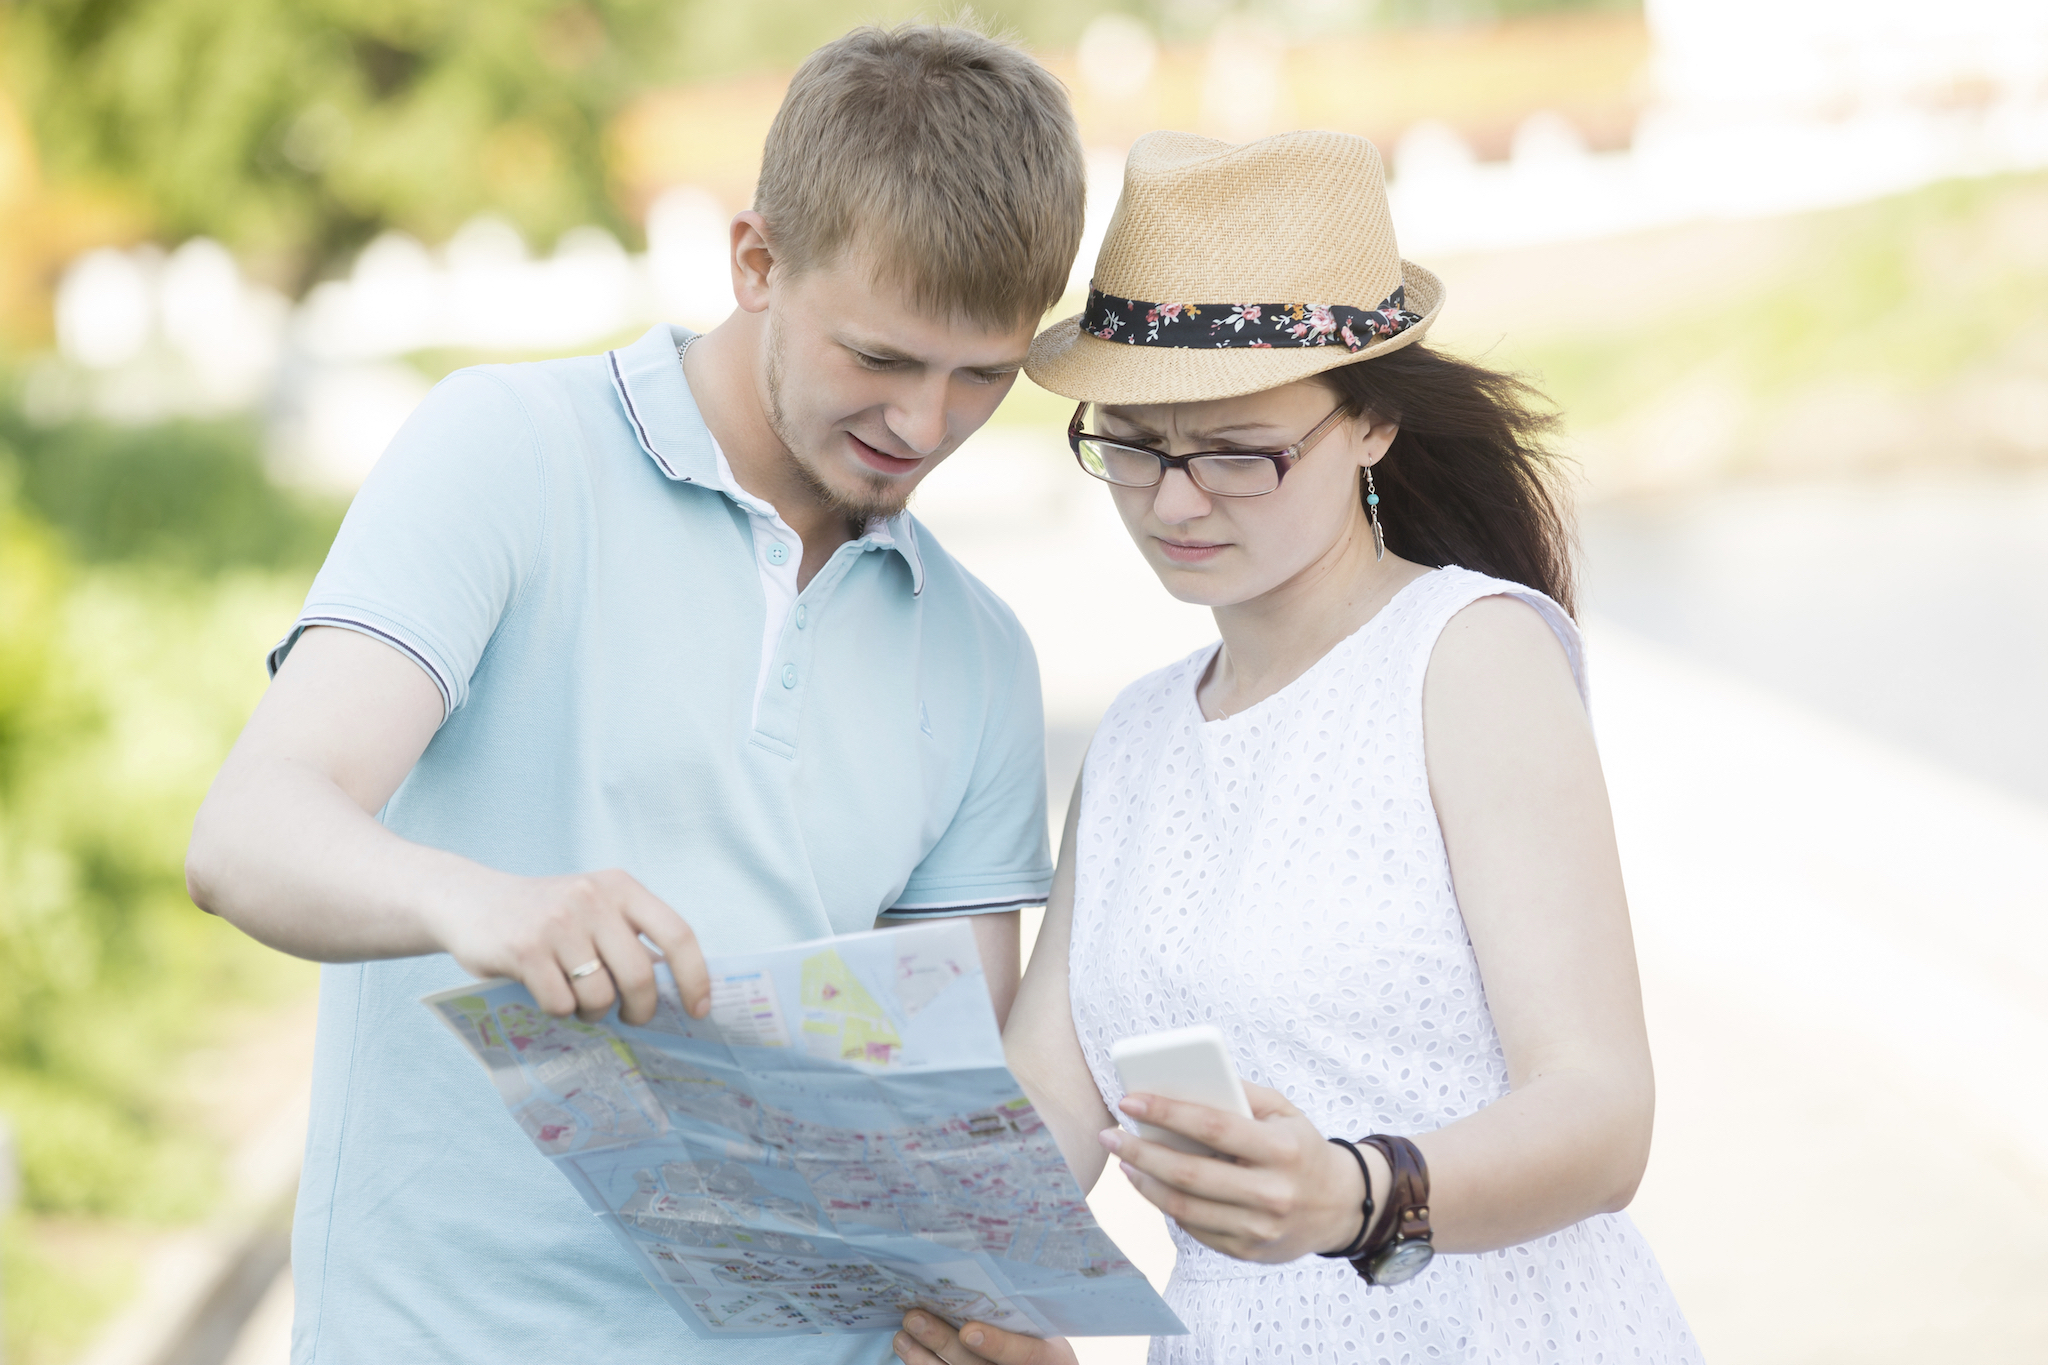 Beautiful traveling couple got lost and searching location on map. Man in blue t-shirt looking at map on summer trip. Woman wearing white dress, hat and glasses holding smartphone and frowning